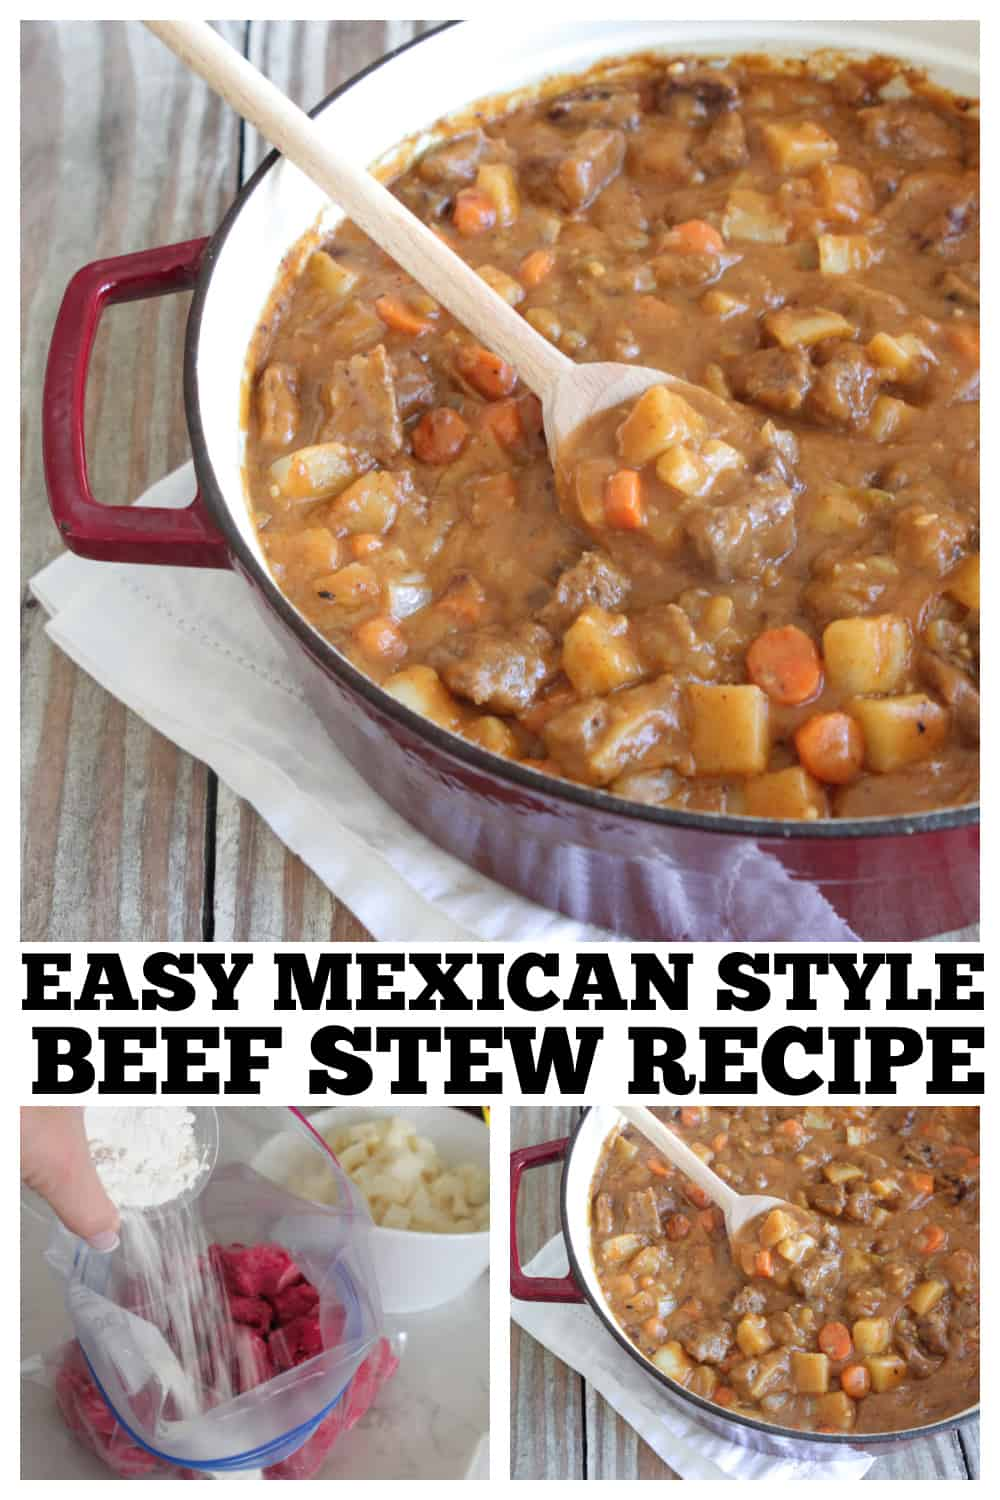 photo collage of beef stew recipe